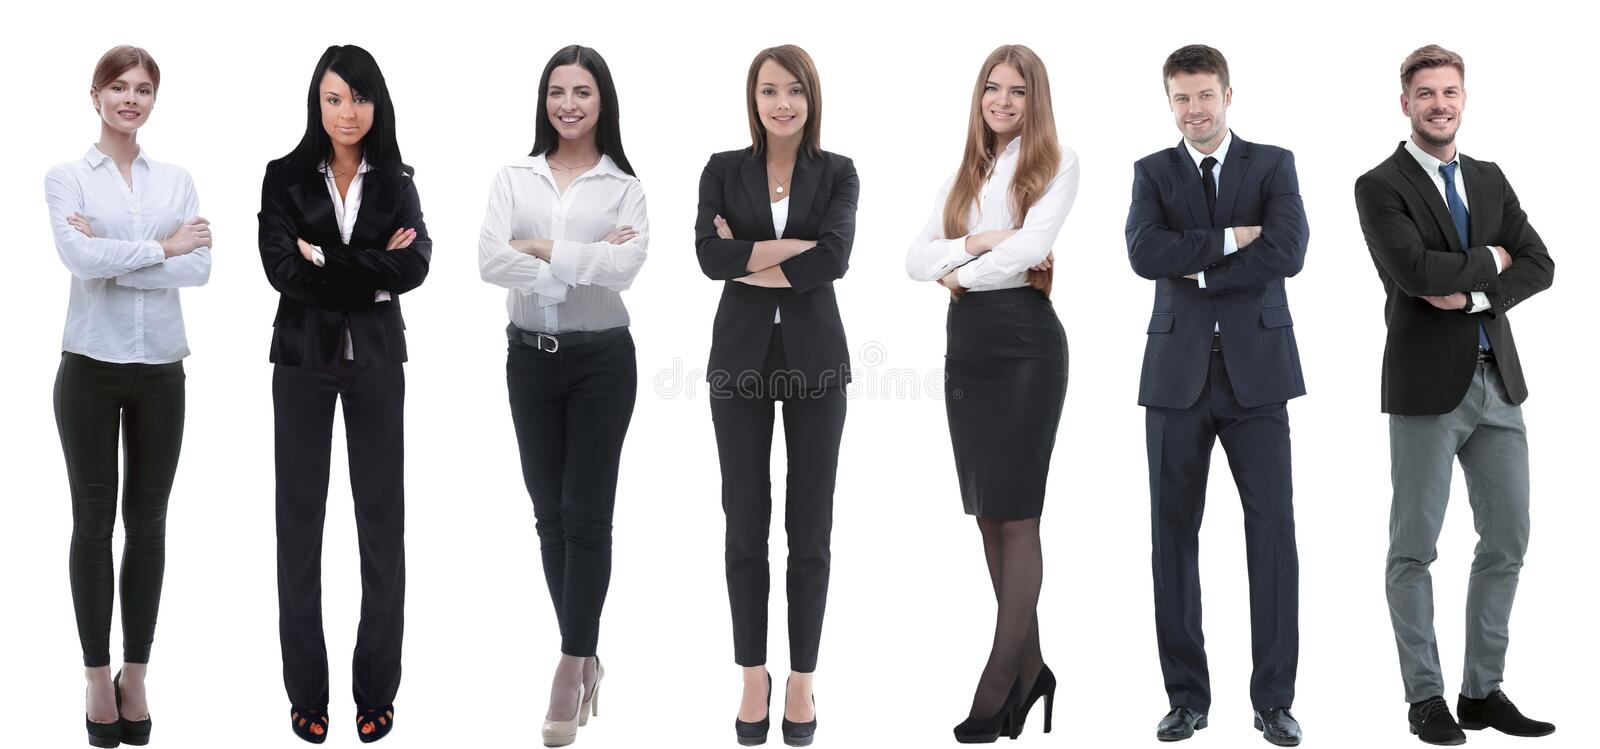 Group of successful business people standing in a row. royalty free stock photos